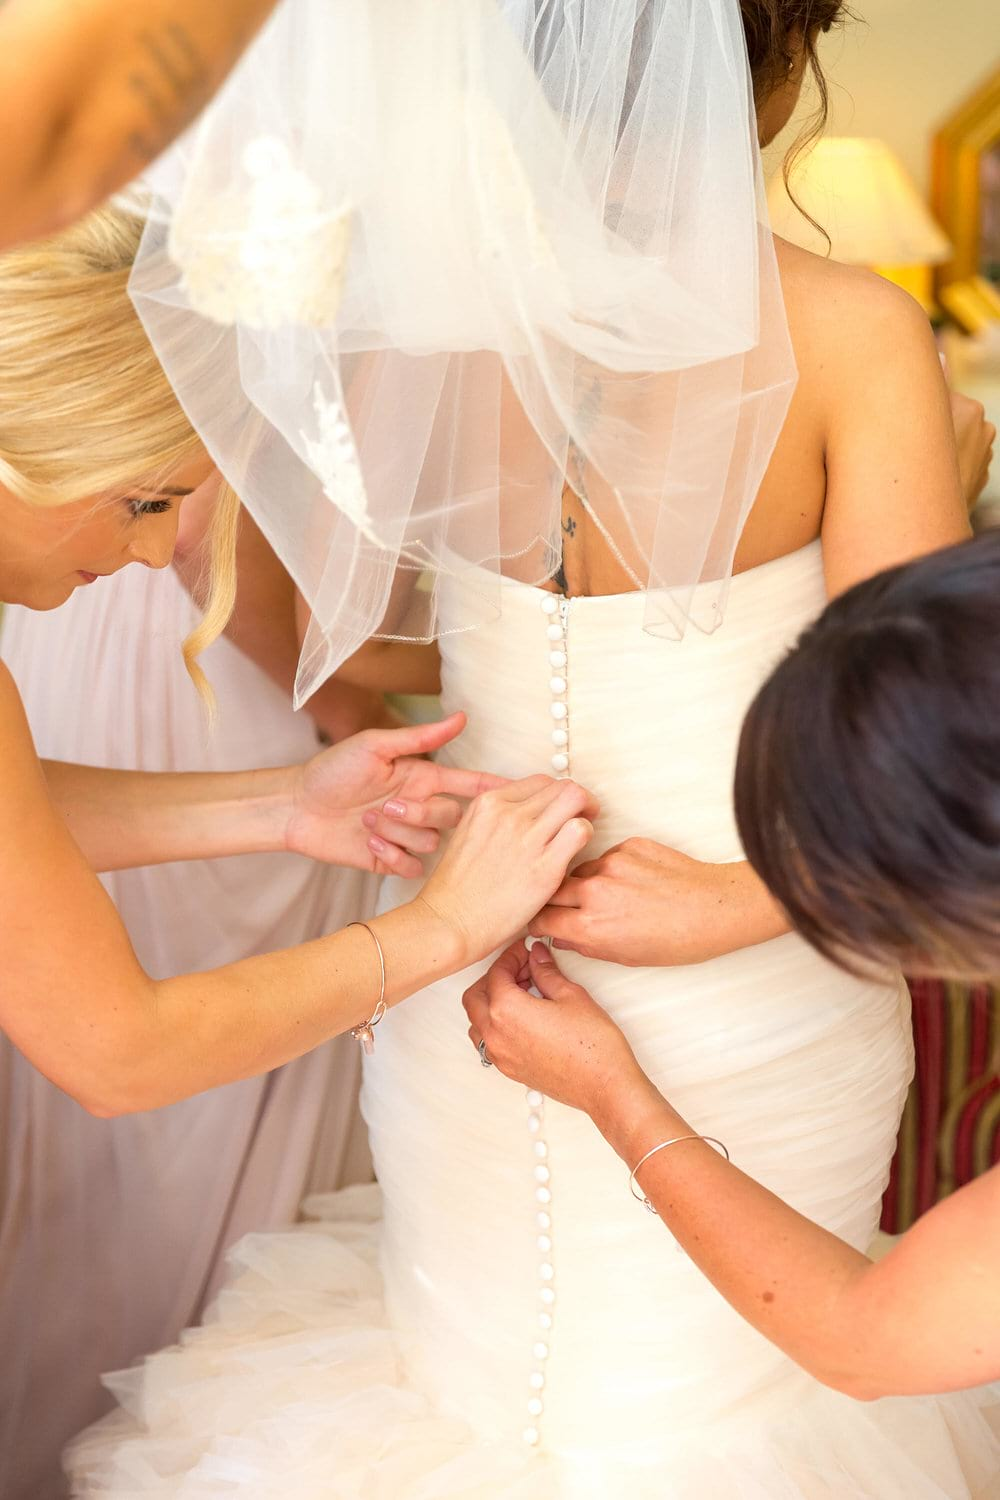 bridesmaids tending to the wedding dress